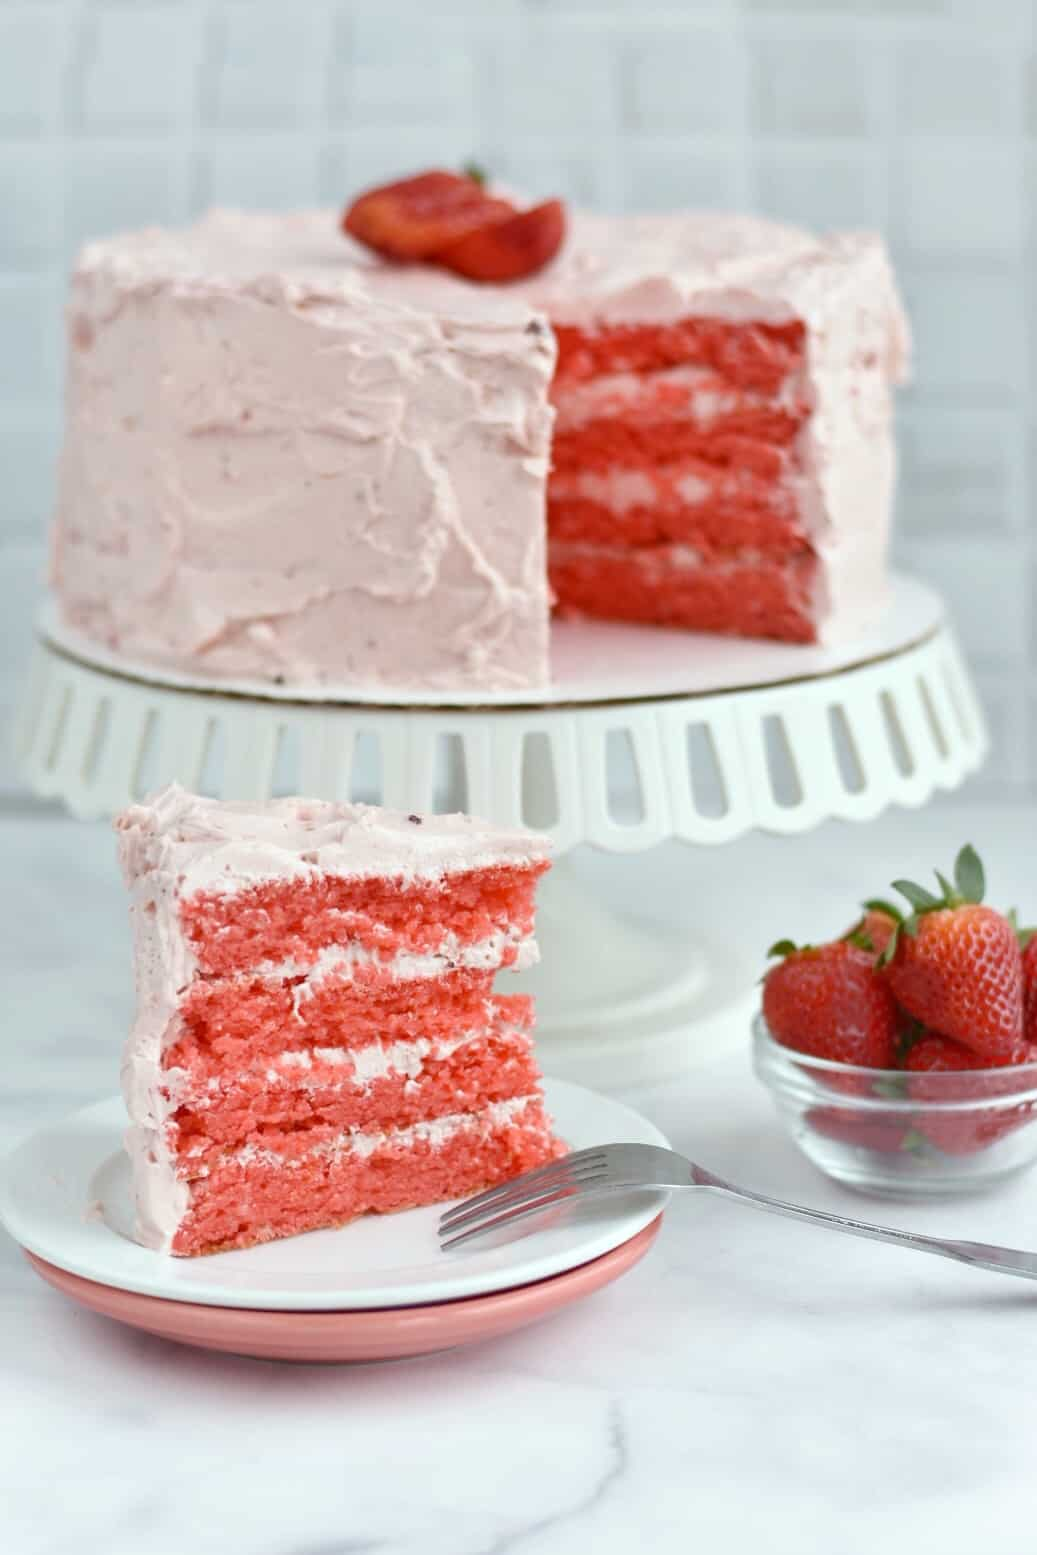 slice of strawberry cake with entire cake in background